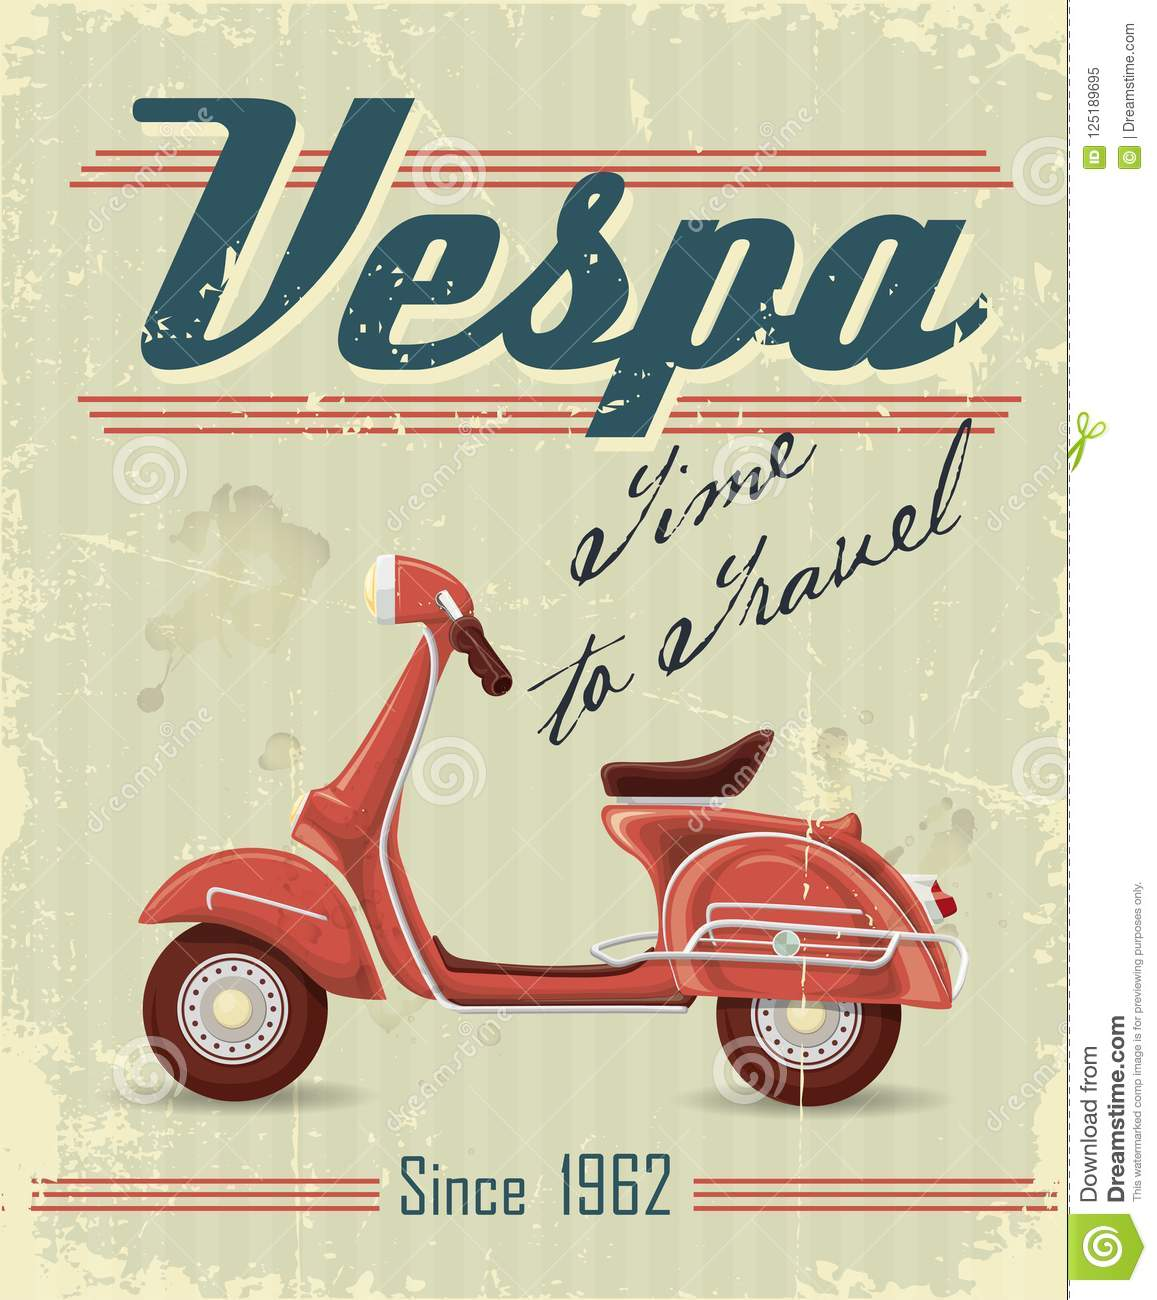 Retro poster with Vespa moped